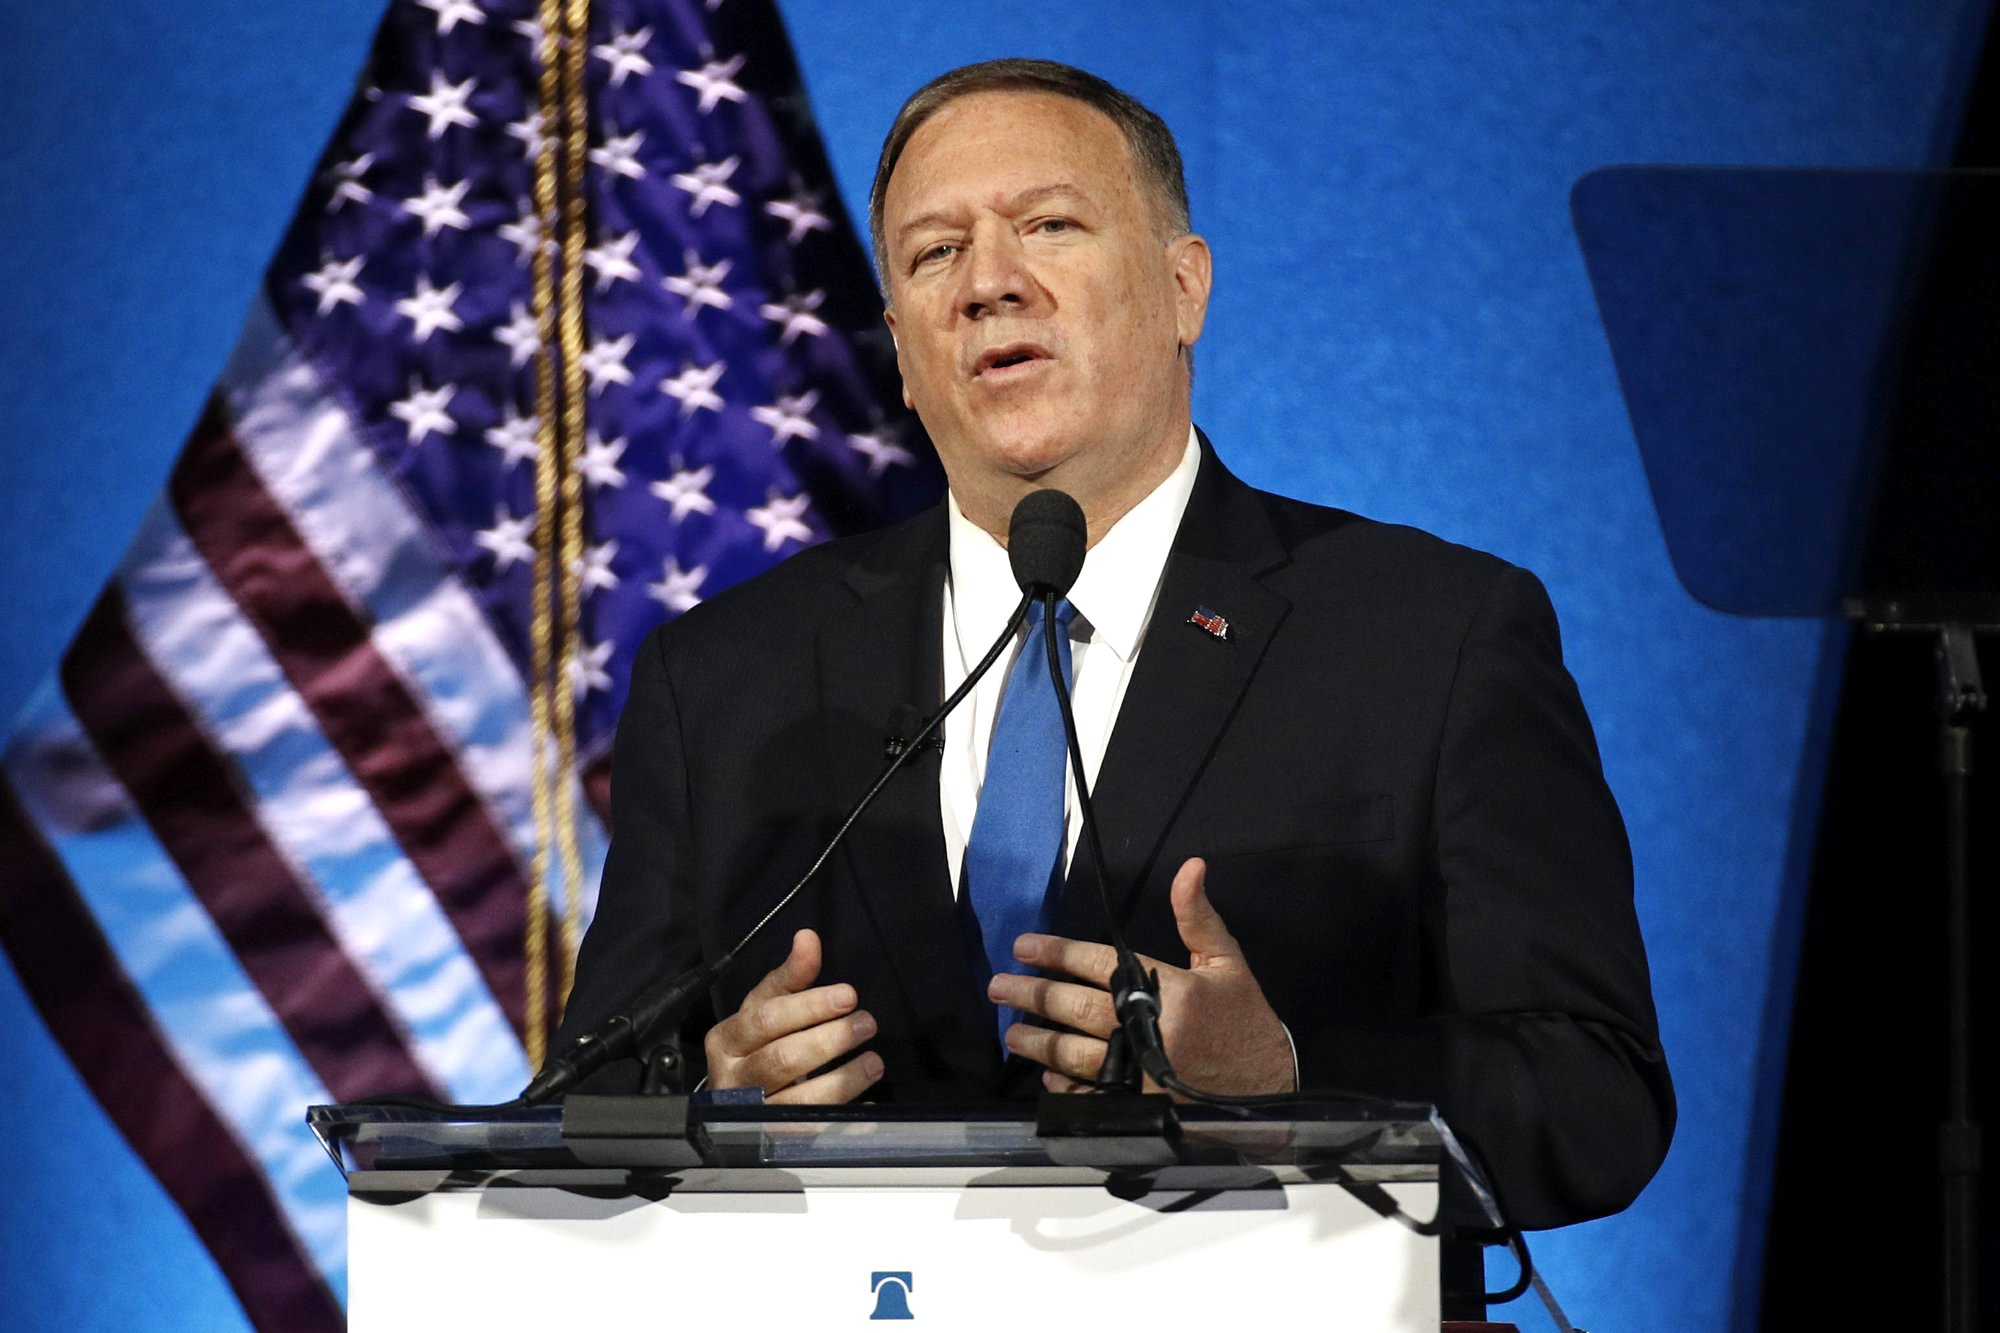 State Department Says Story Claiming Pompeo Will Resign Soon 'Completely False'